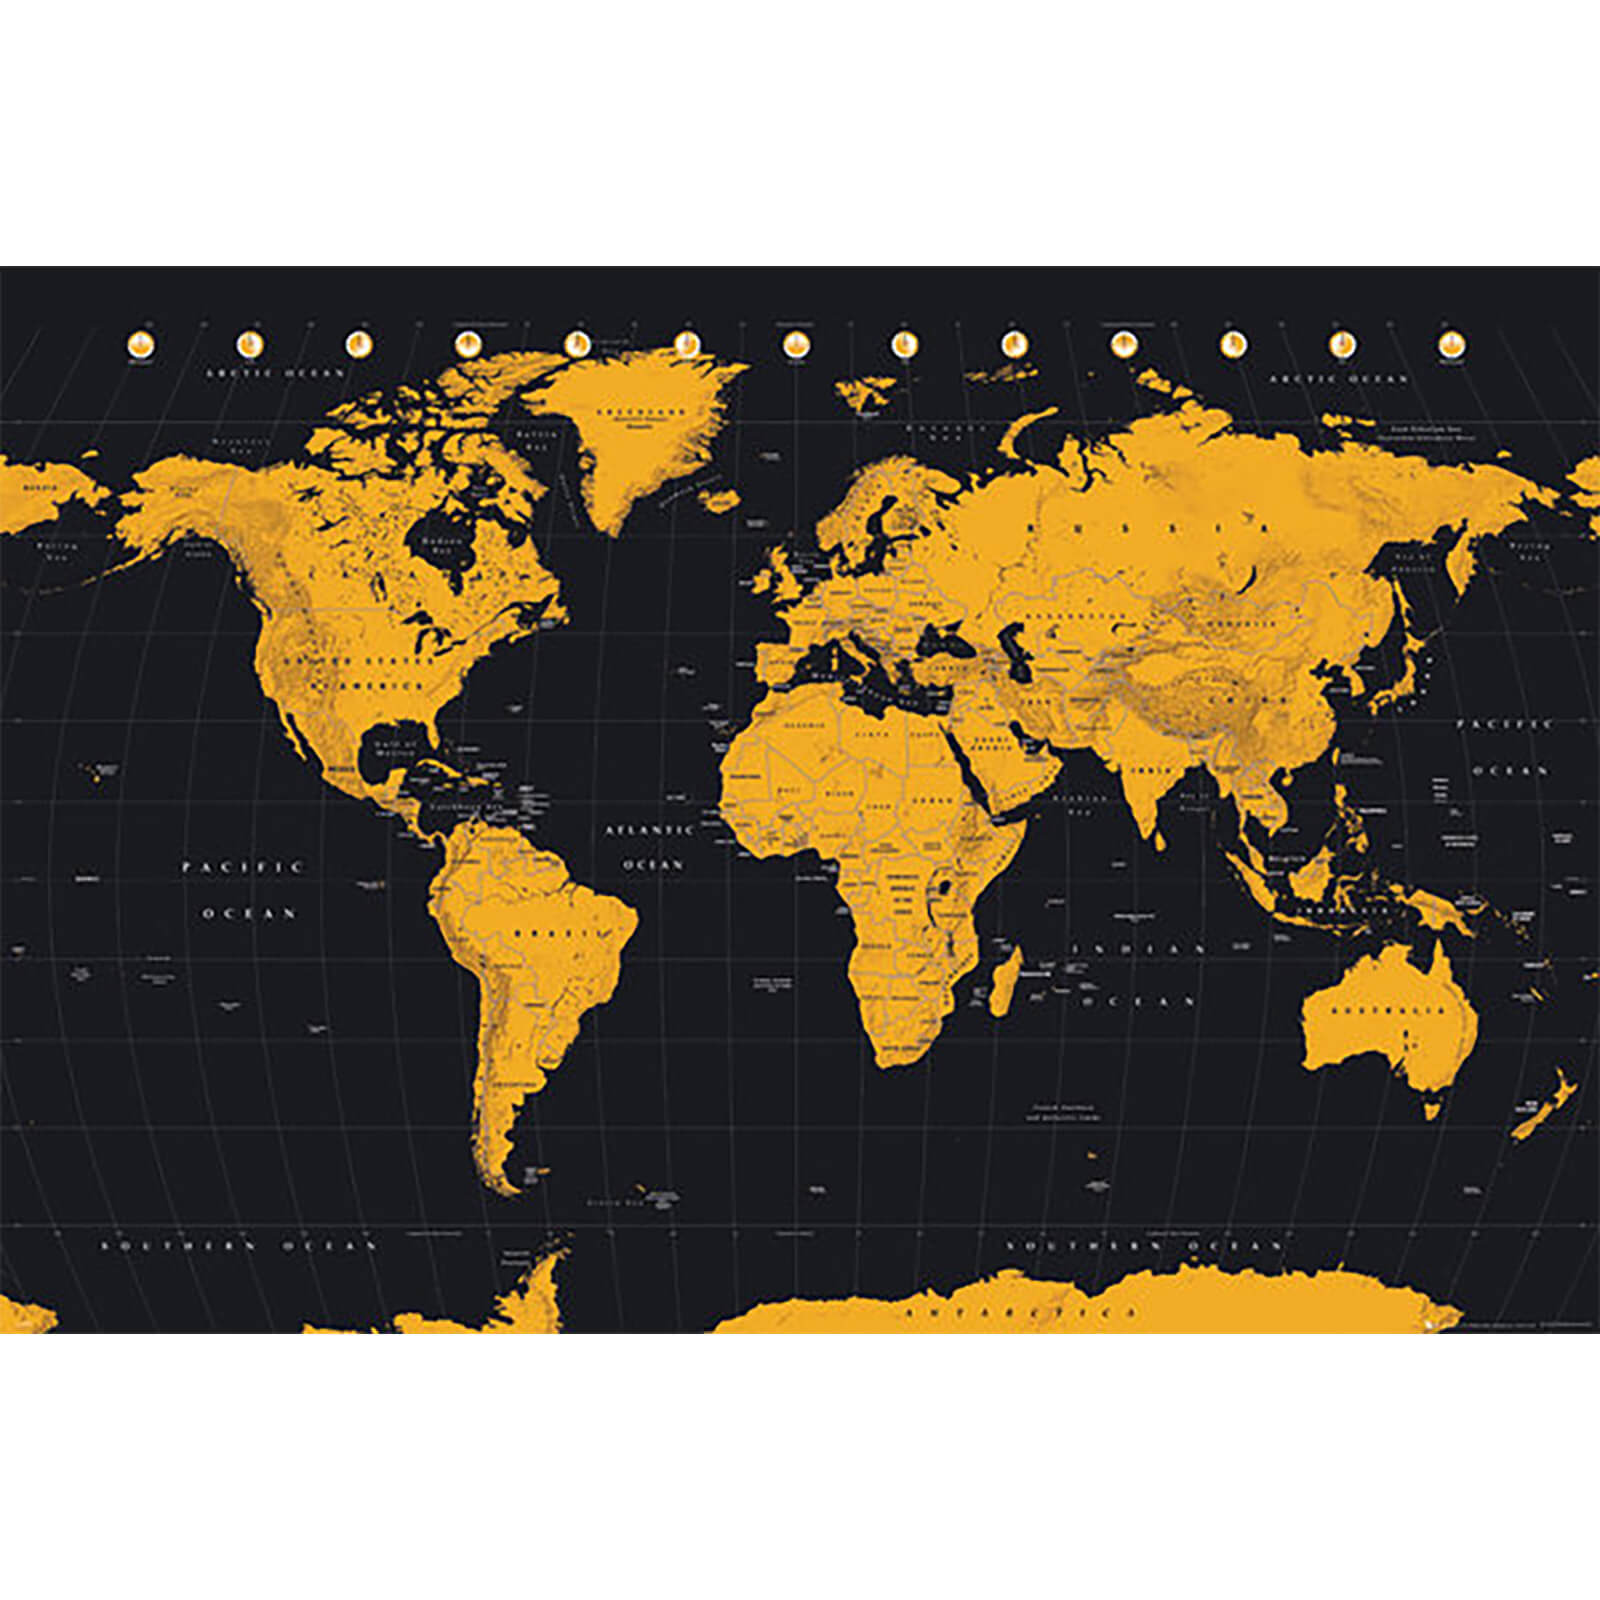 World Map Gold World Map - 61 x 91.5cm Maxi Poster